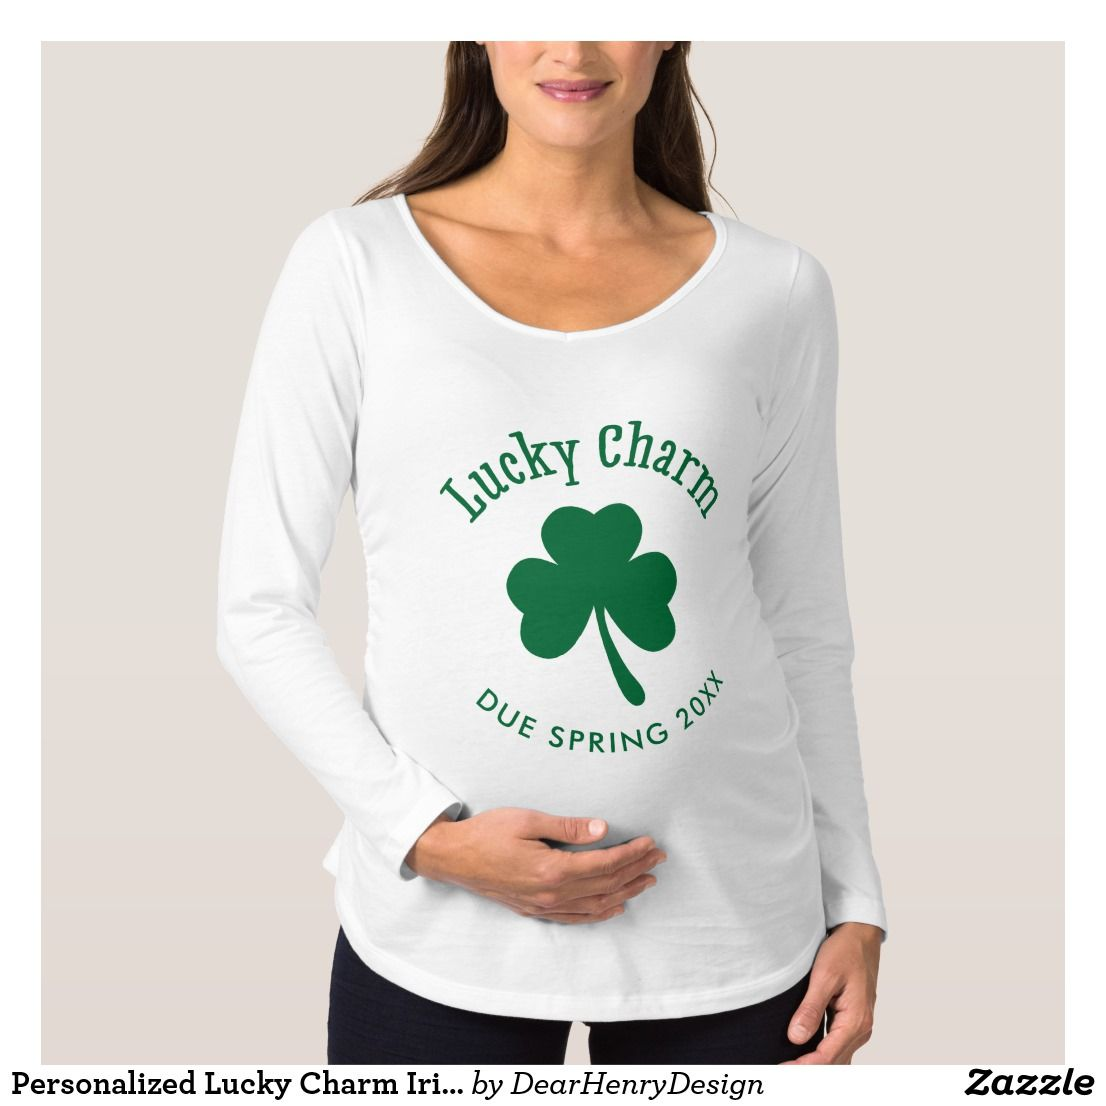 a64e6ff0a3949 Personalized Lucky Charm Irish Maternity Shirt #stpatricksday st.patricks  day #shamrock #sneakers